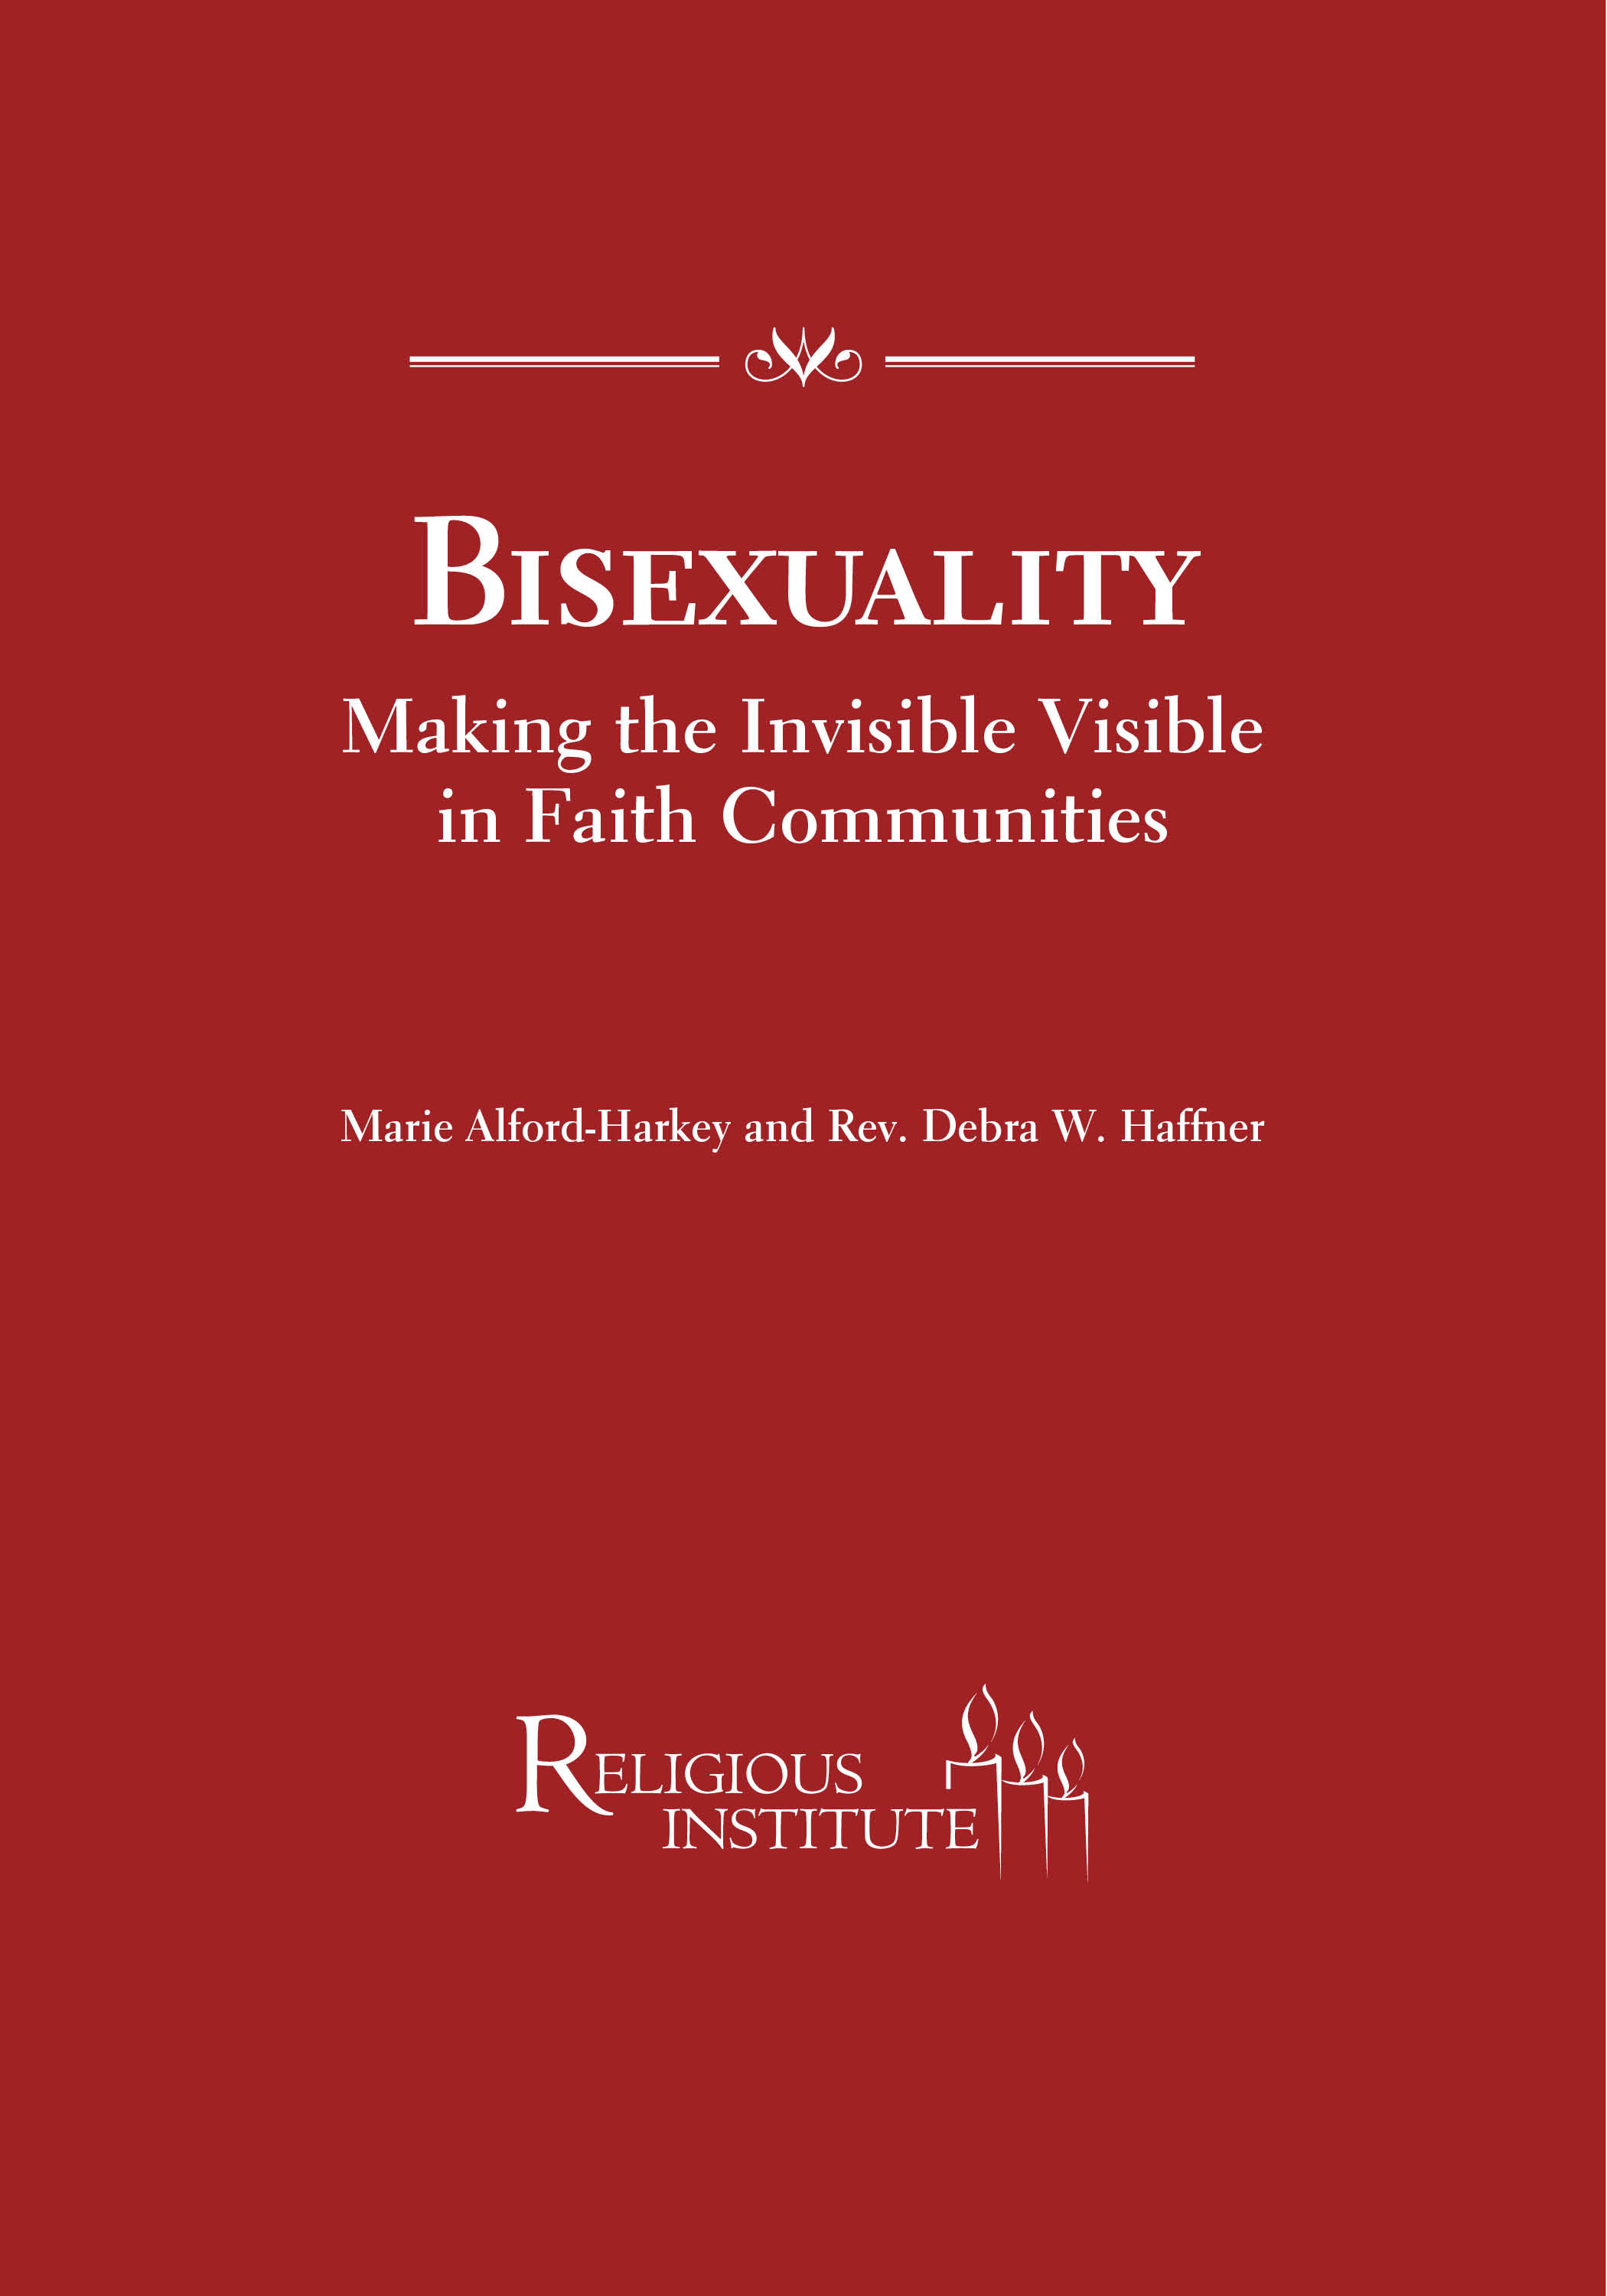 Bisexuality: Making the Invisible Visible in Faith Communities